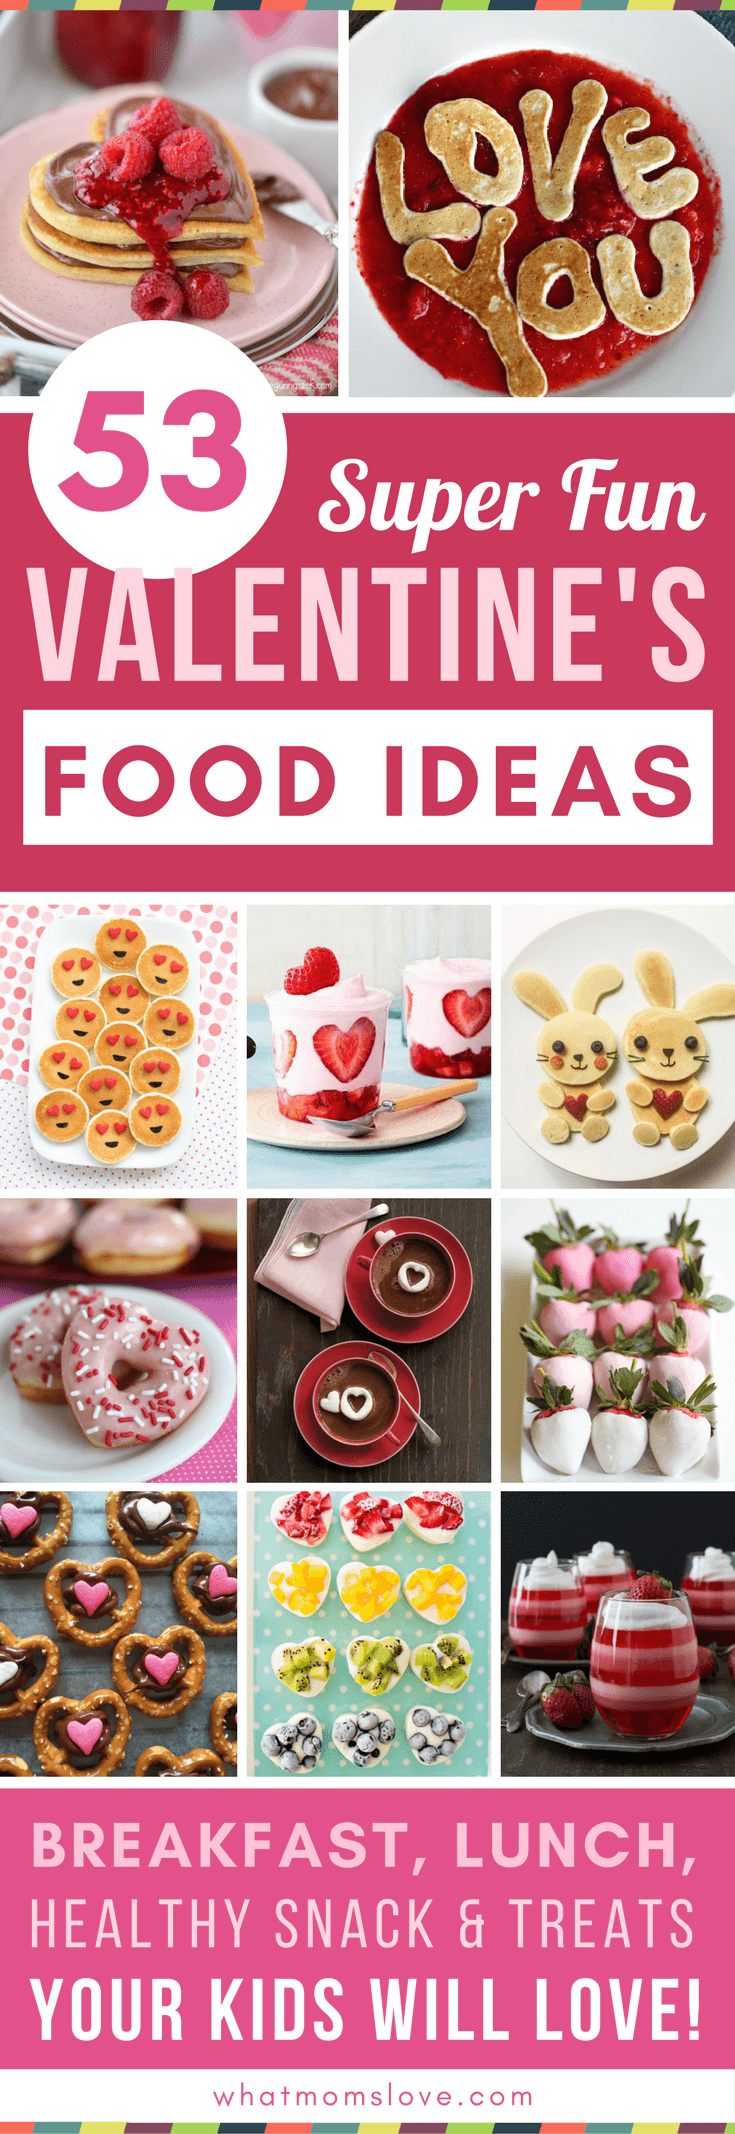 50 Valentines Day Food Ideas For Kids Fun Recipes For Breakfast